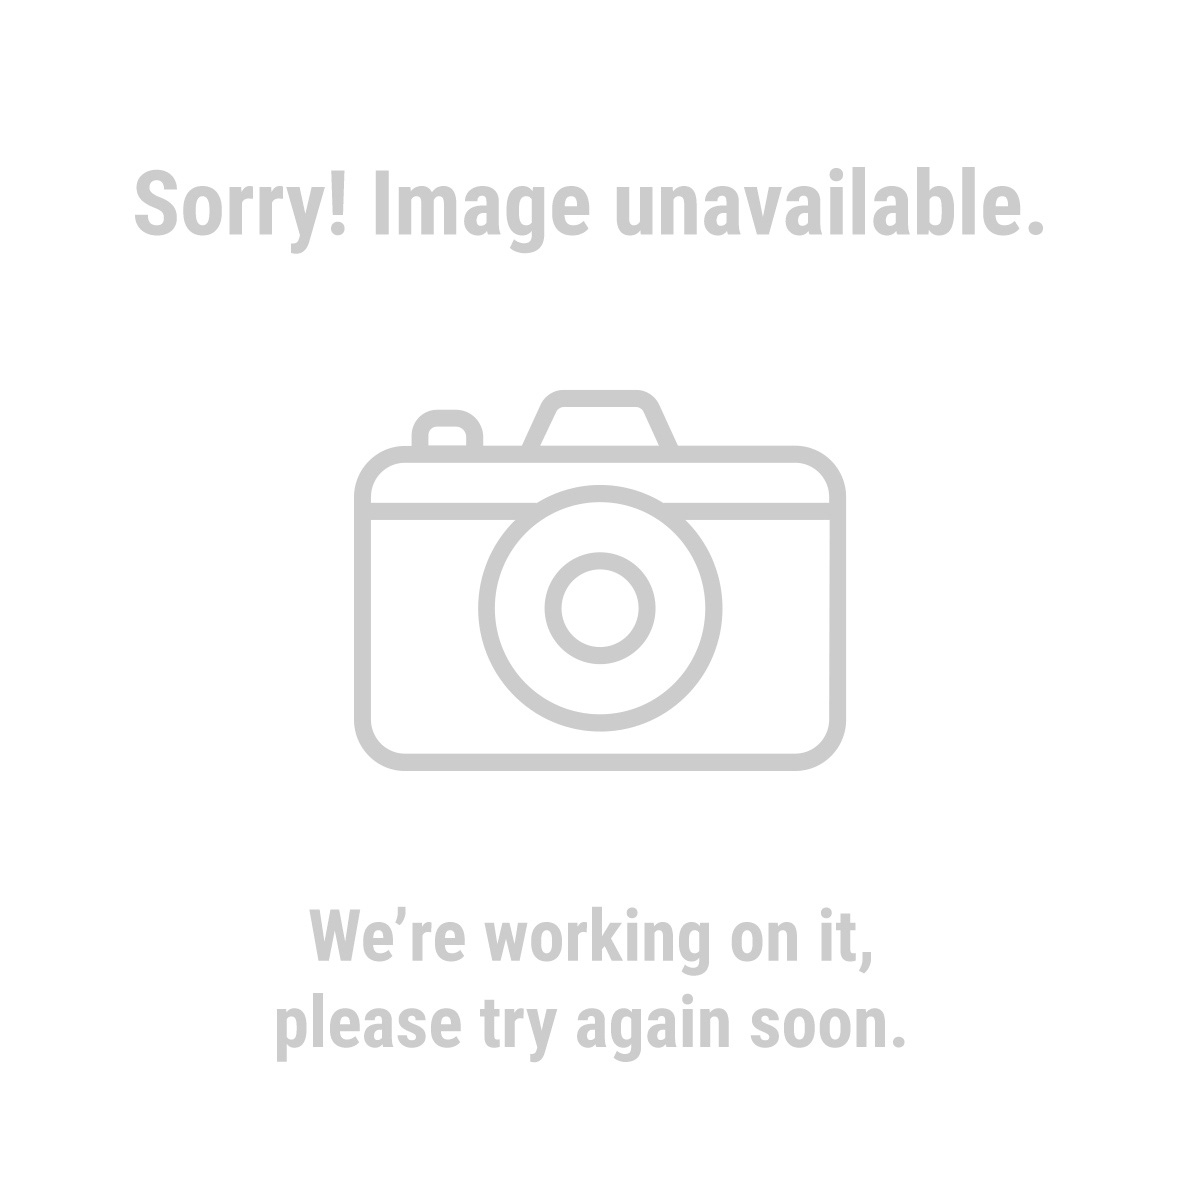 Badland Winches 68142 12,000 lb. Off-Road Vehicle Winch with Automatic Load-Holding Brake